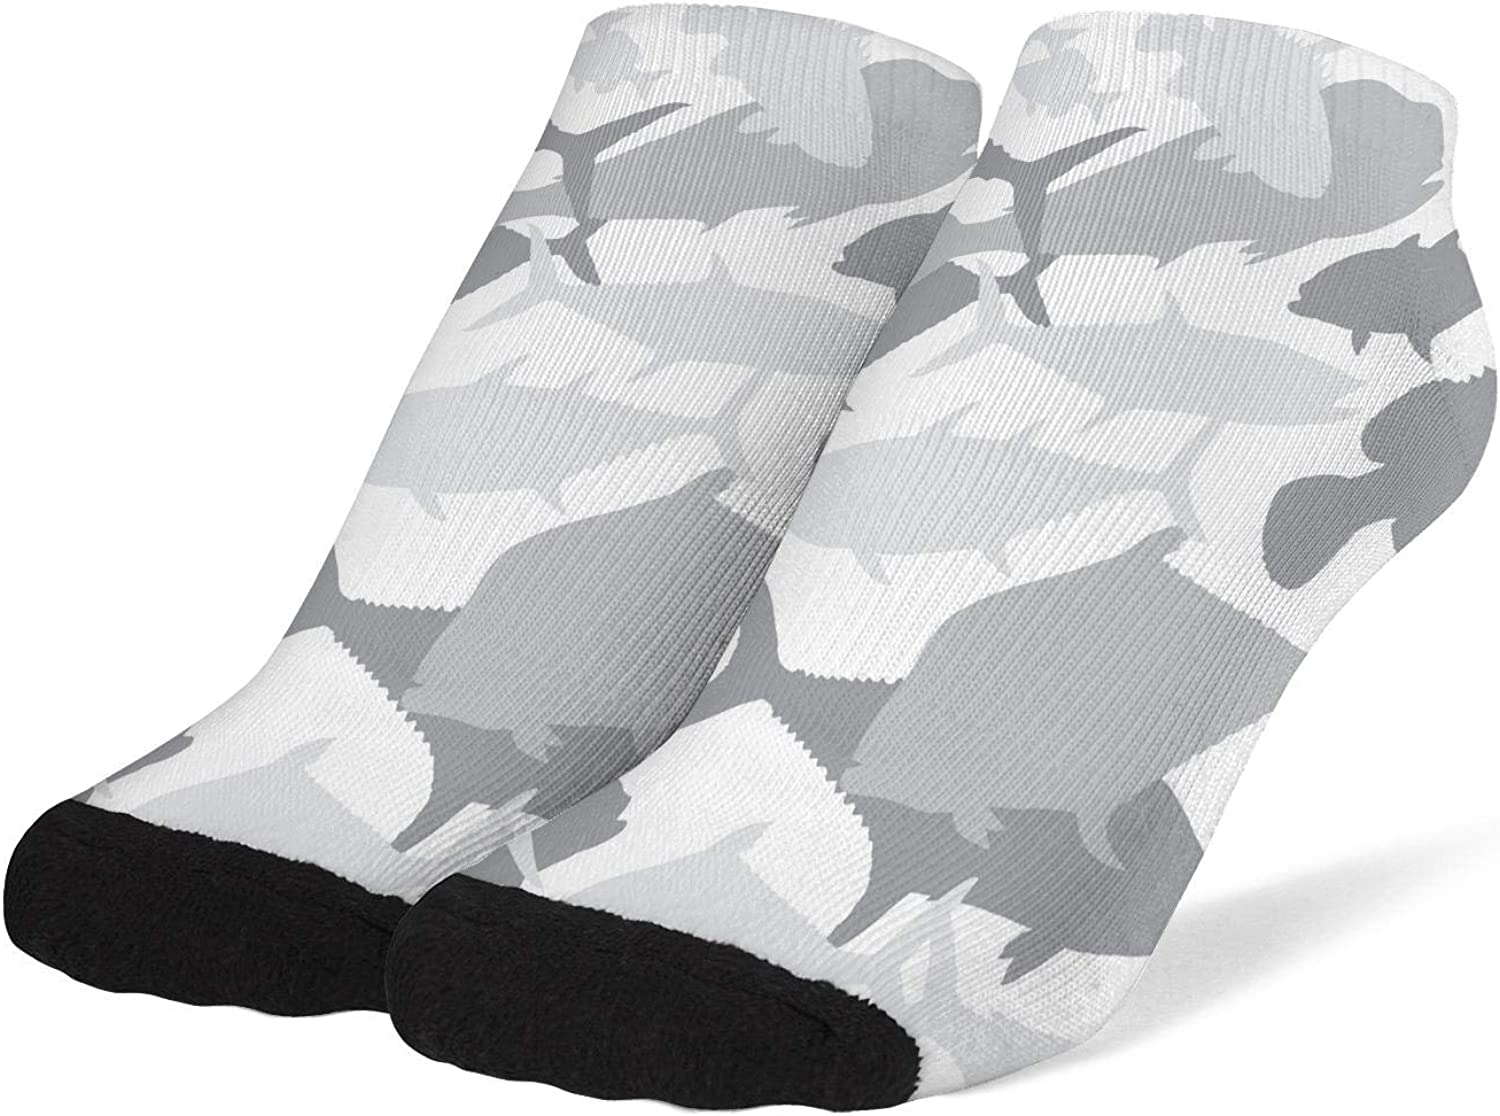 Women's Army Camo Camouflage Military Socks Cotton No Show Low Cut Sock Ankle Sock